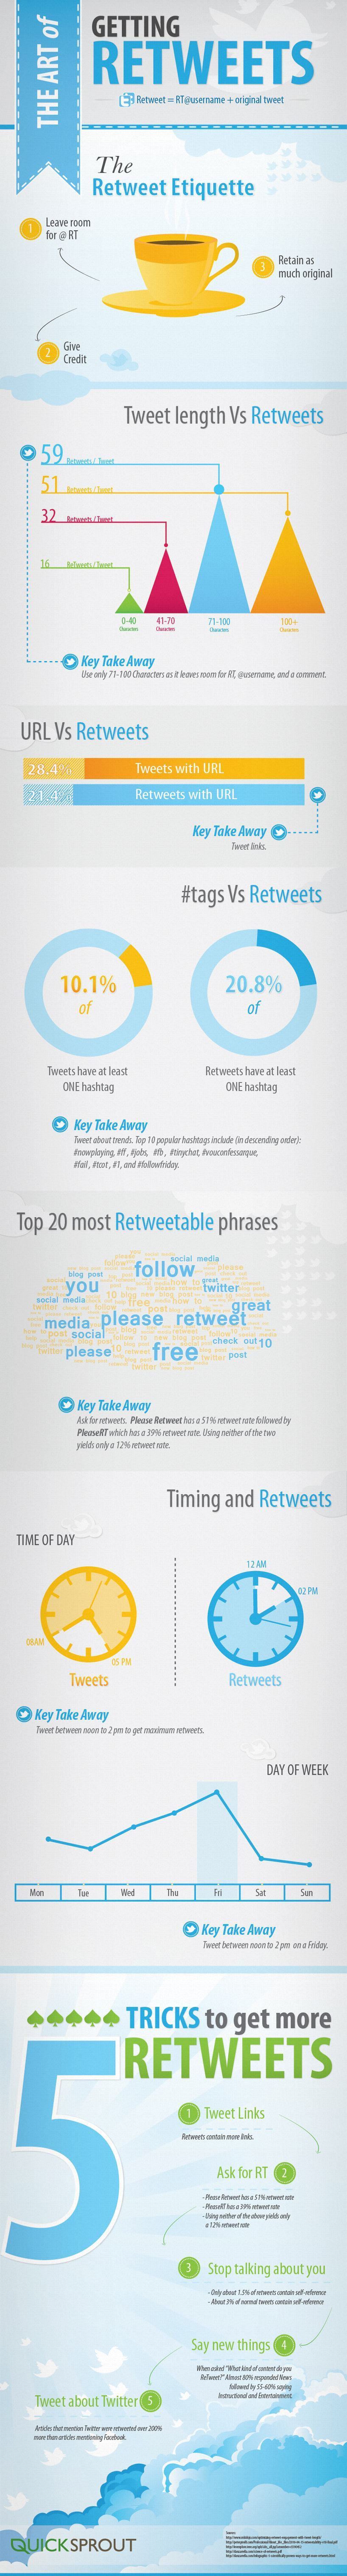 twitter get retweeted infographic